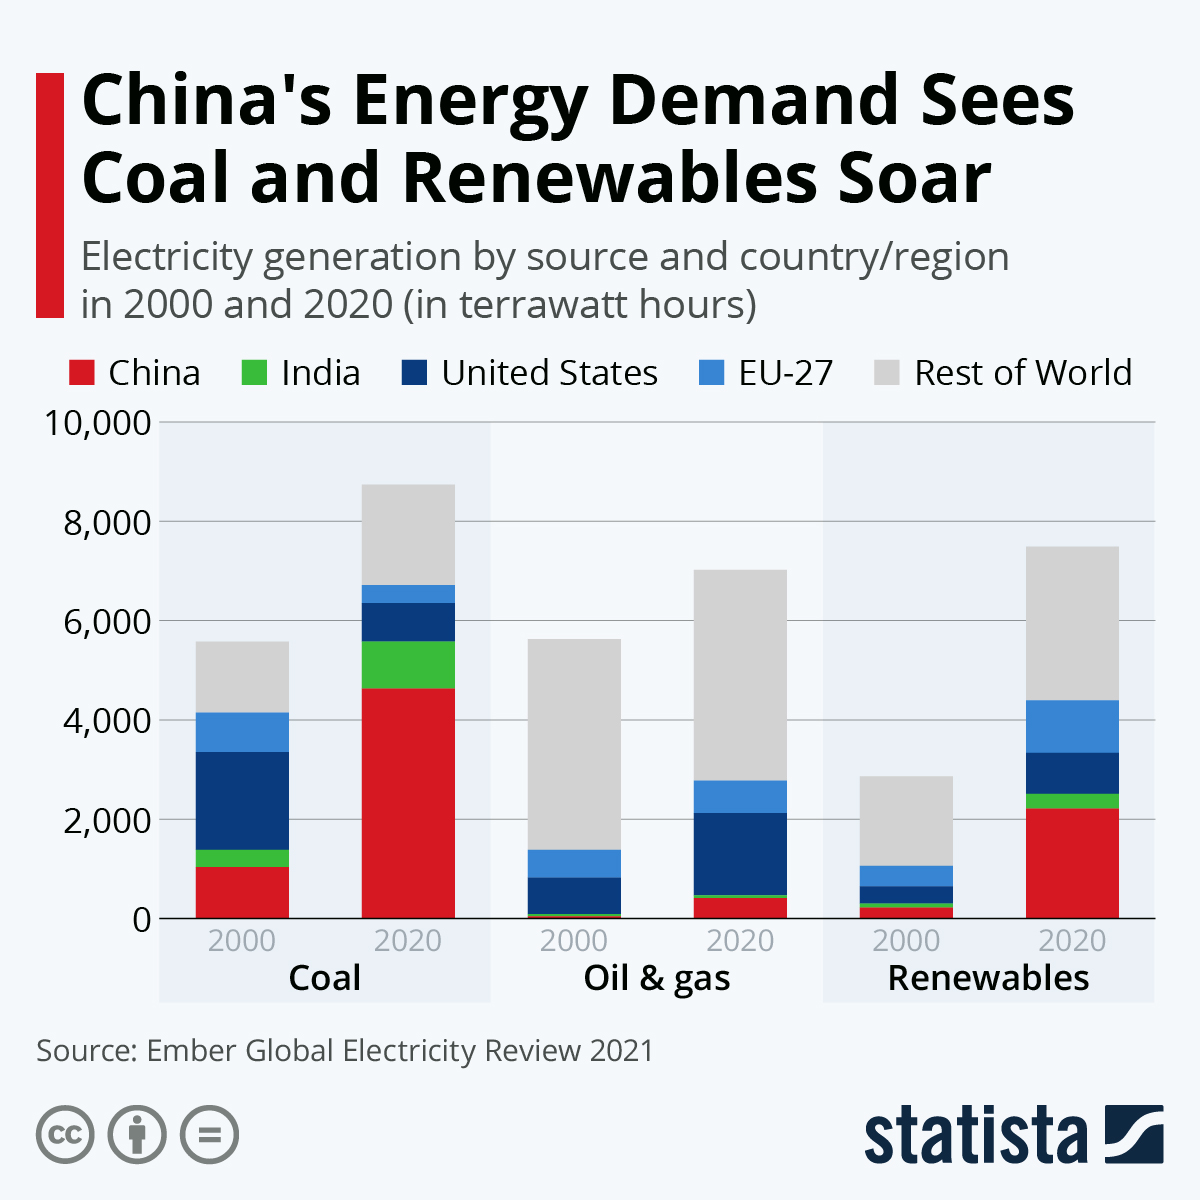 China's demand for energy soared